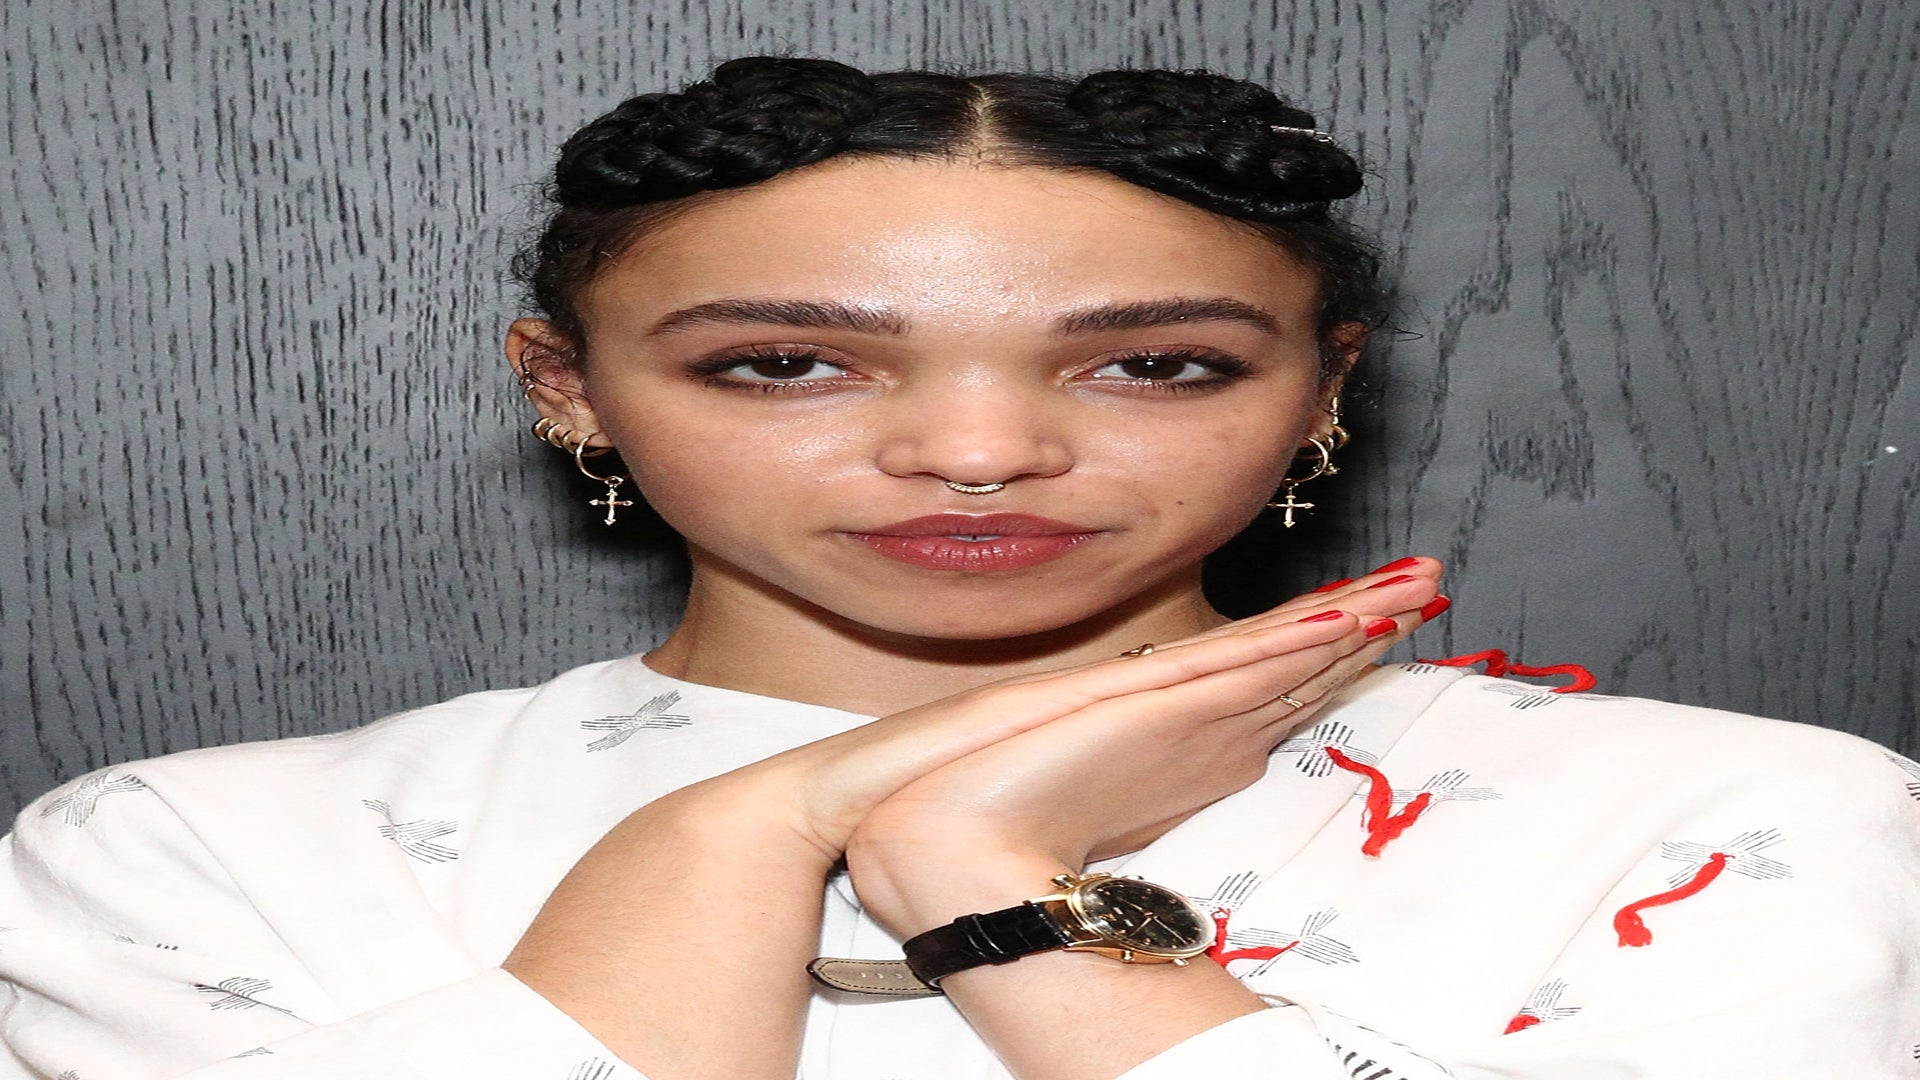 FKA Twigs Asked Twitter 'How Do Braids Make You Feel?' and The Answers Are Amazing